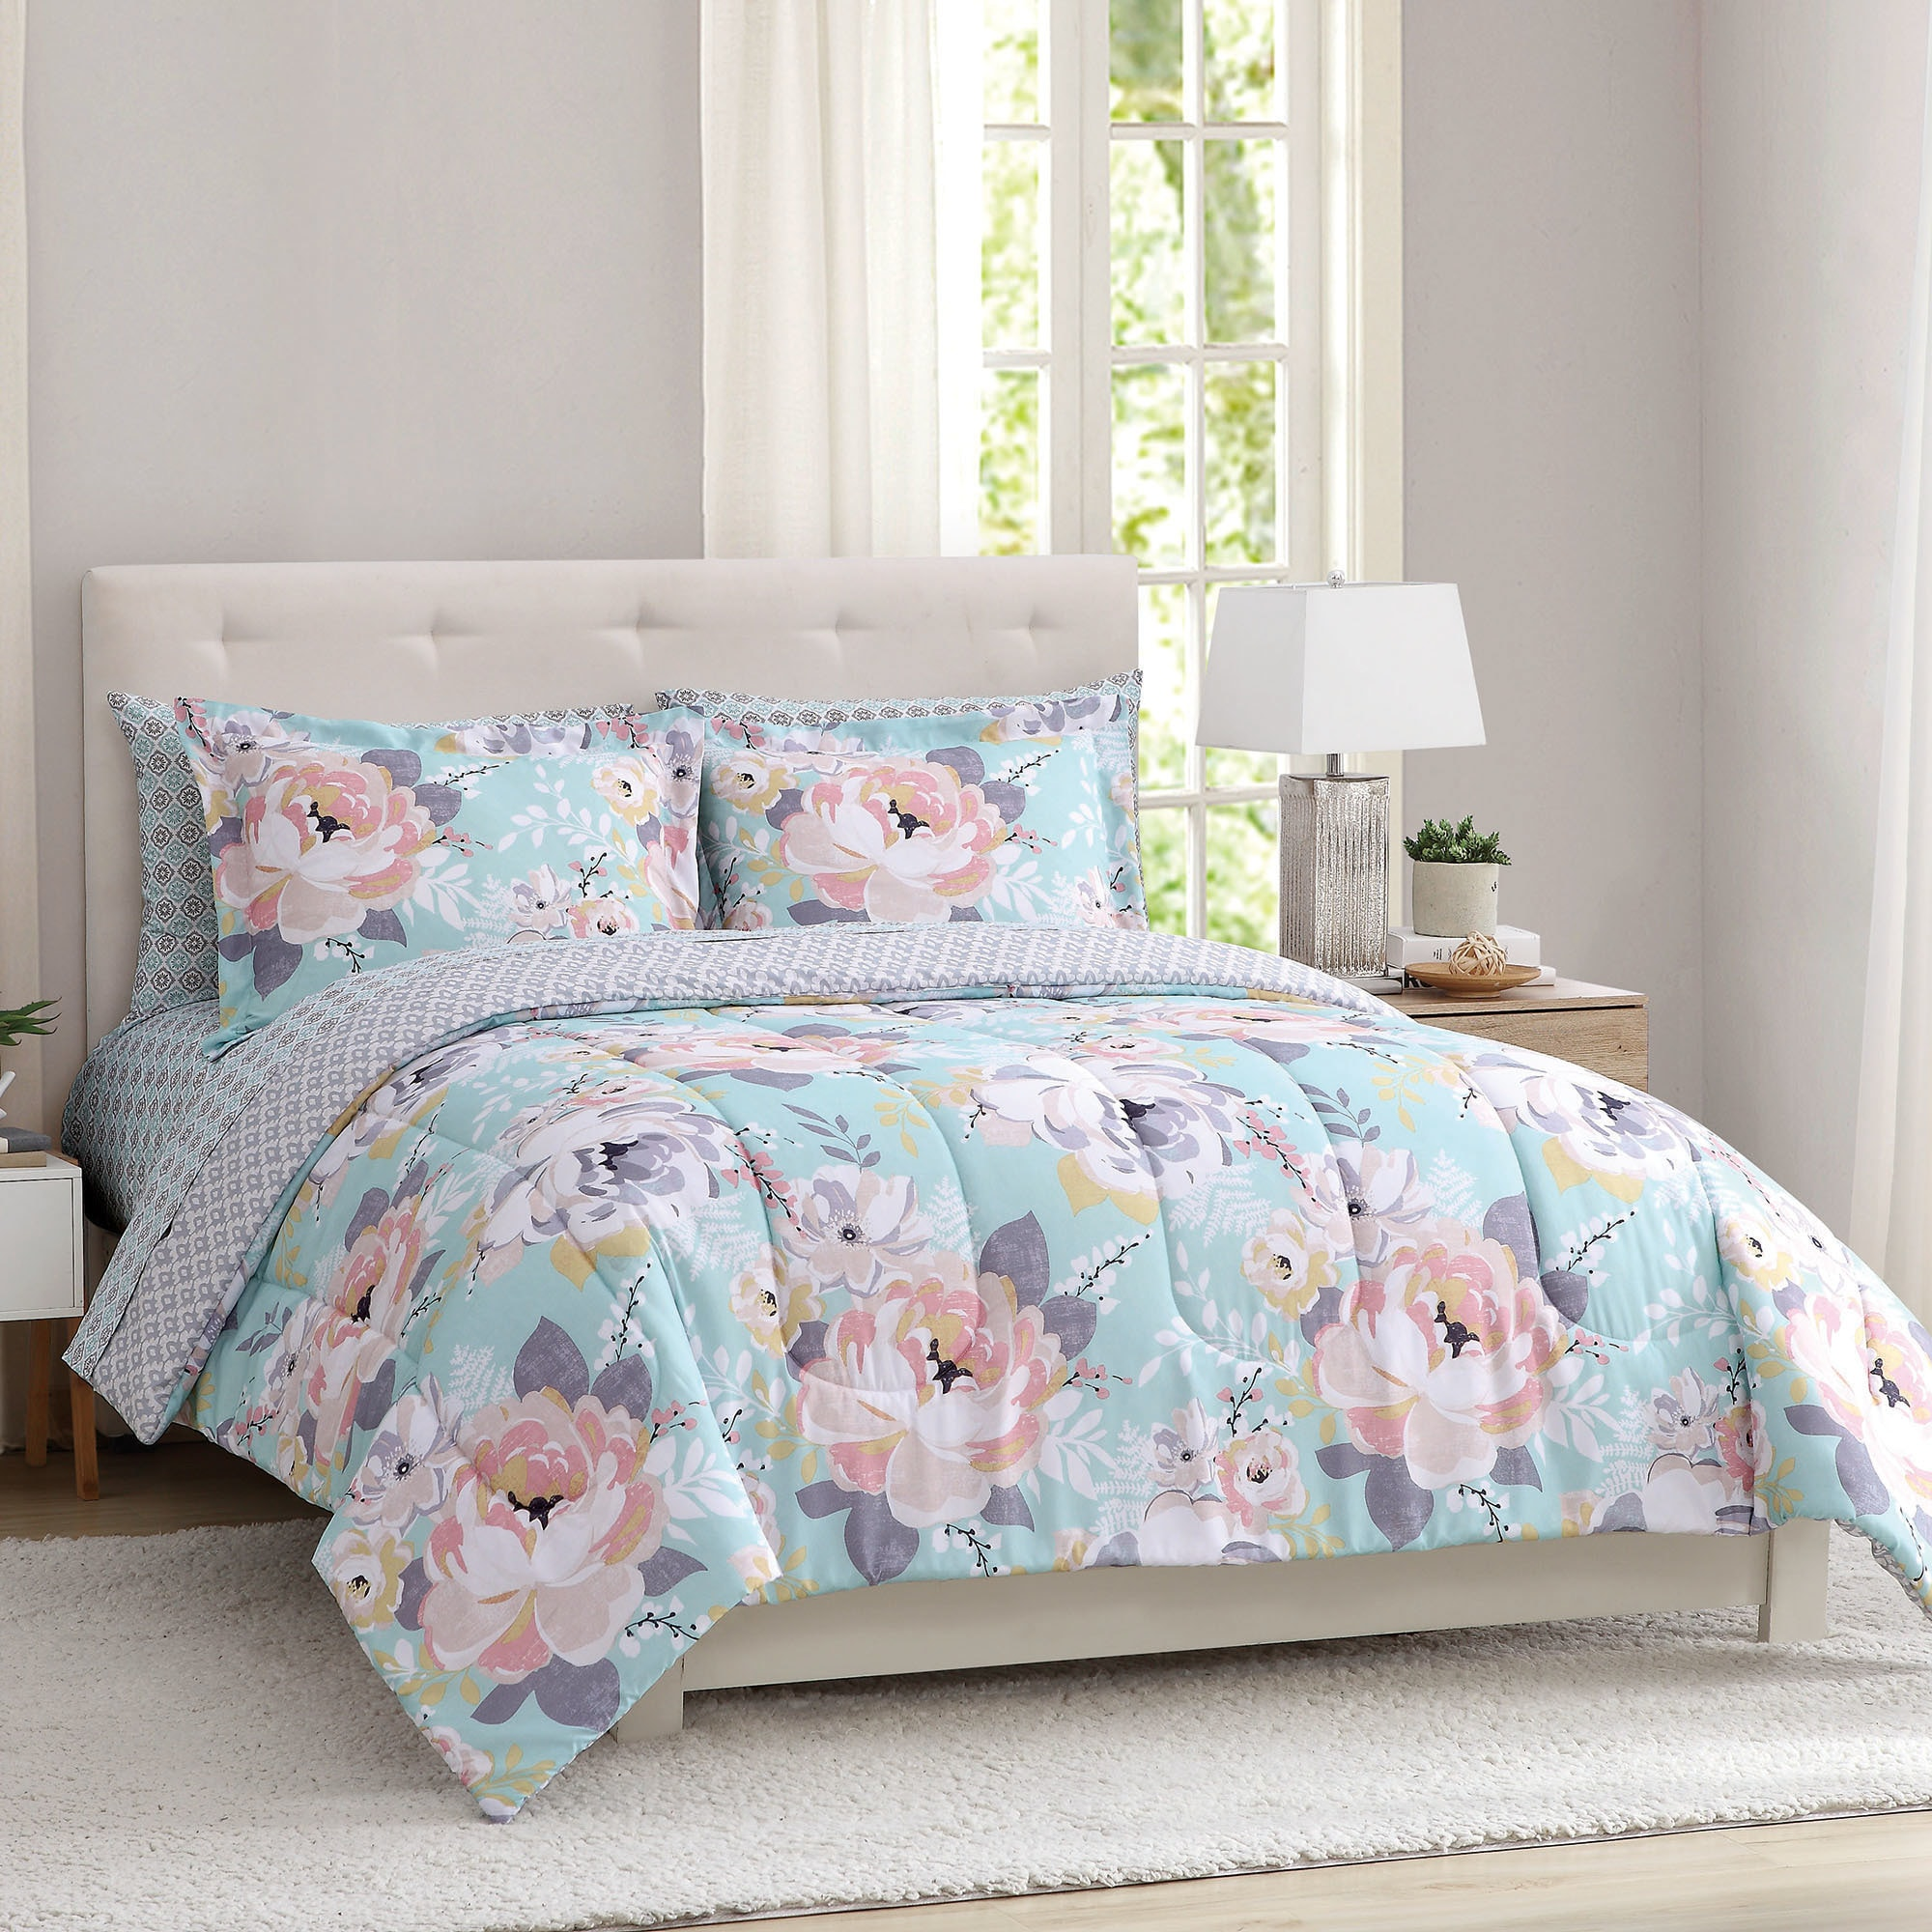 Sara Floral Microfiber Peach And Oak Multi 3 Piece Comforter Set With Comforter And Shams